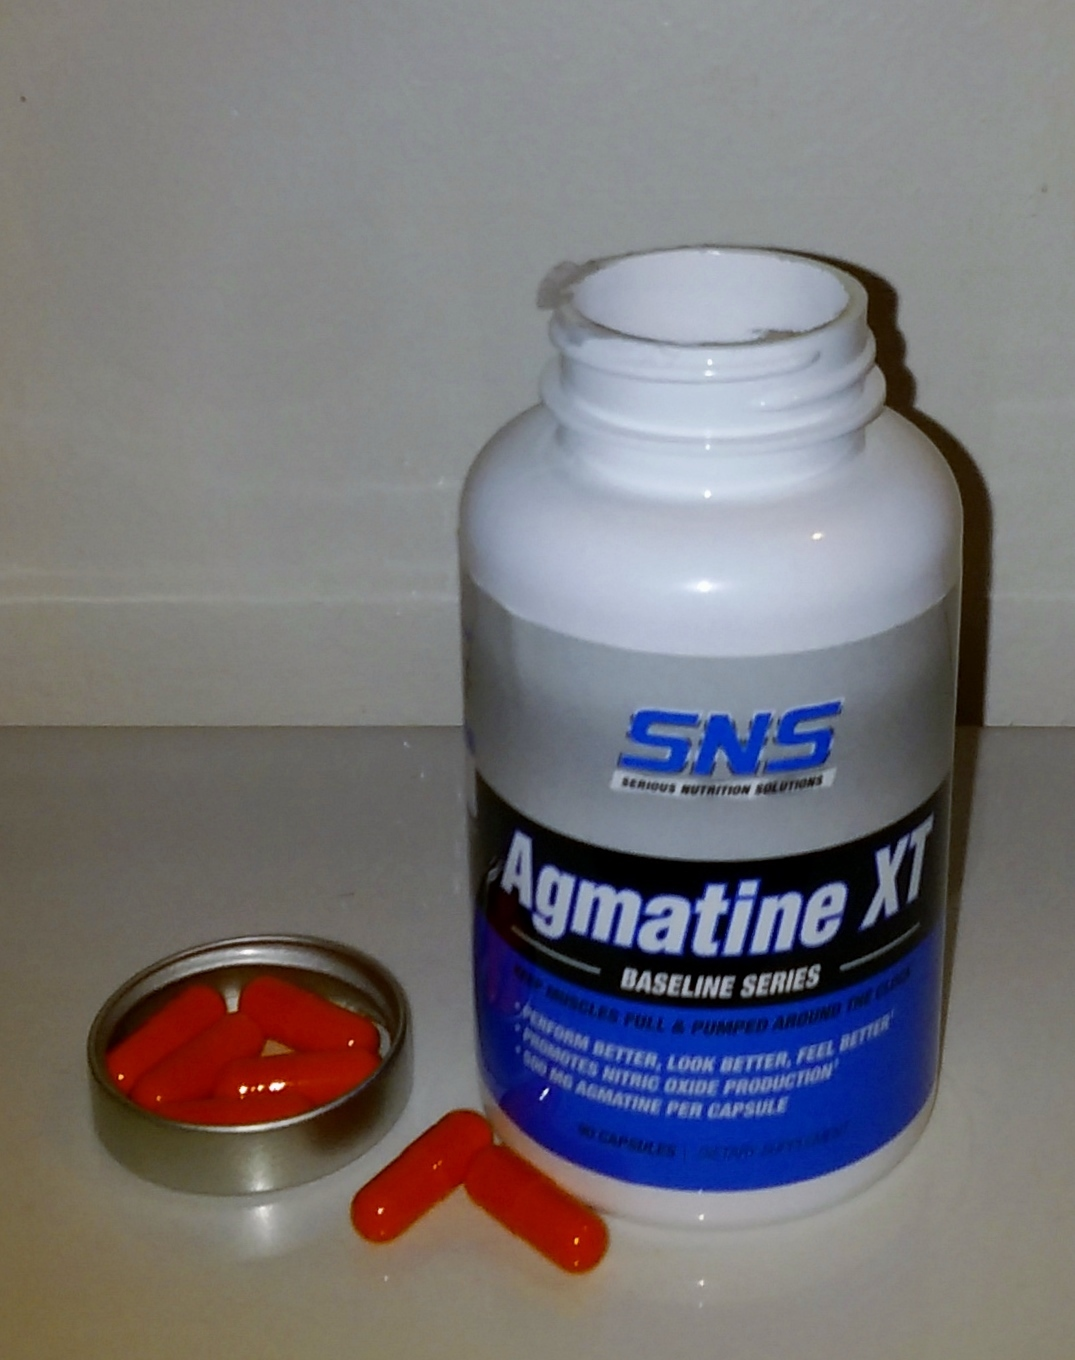 SNS Agmatine XT -- New Log - Supplement Logs - PricePlow Forum